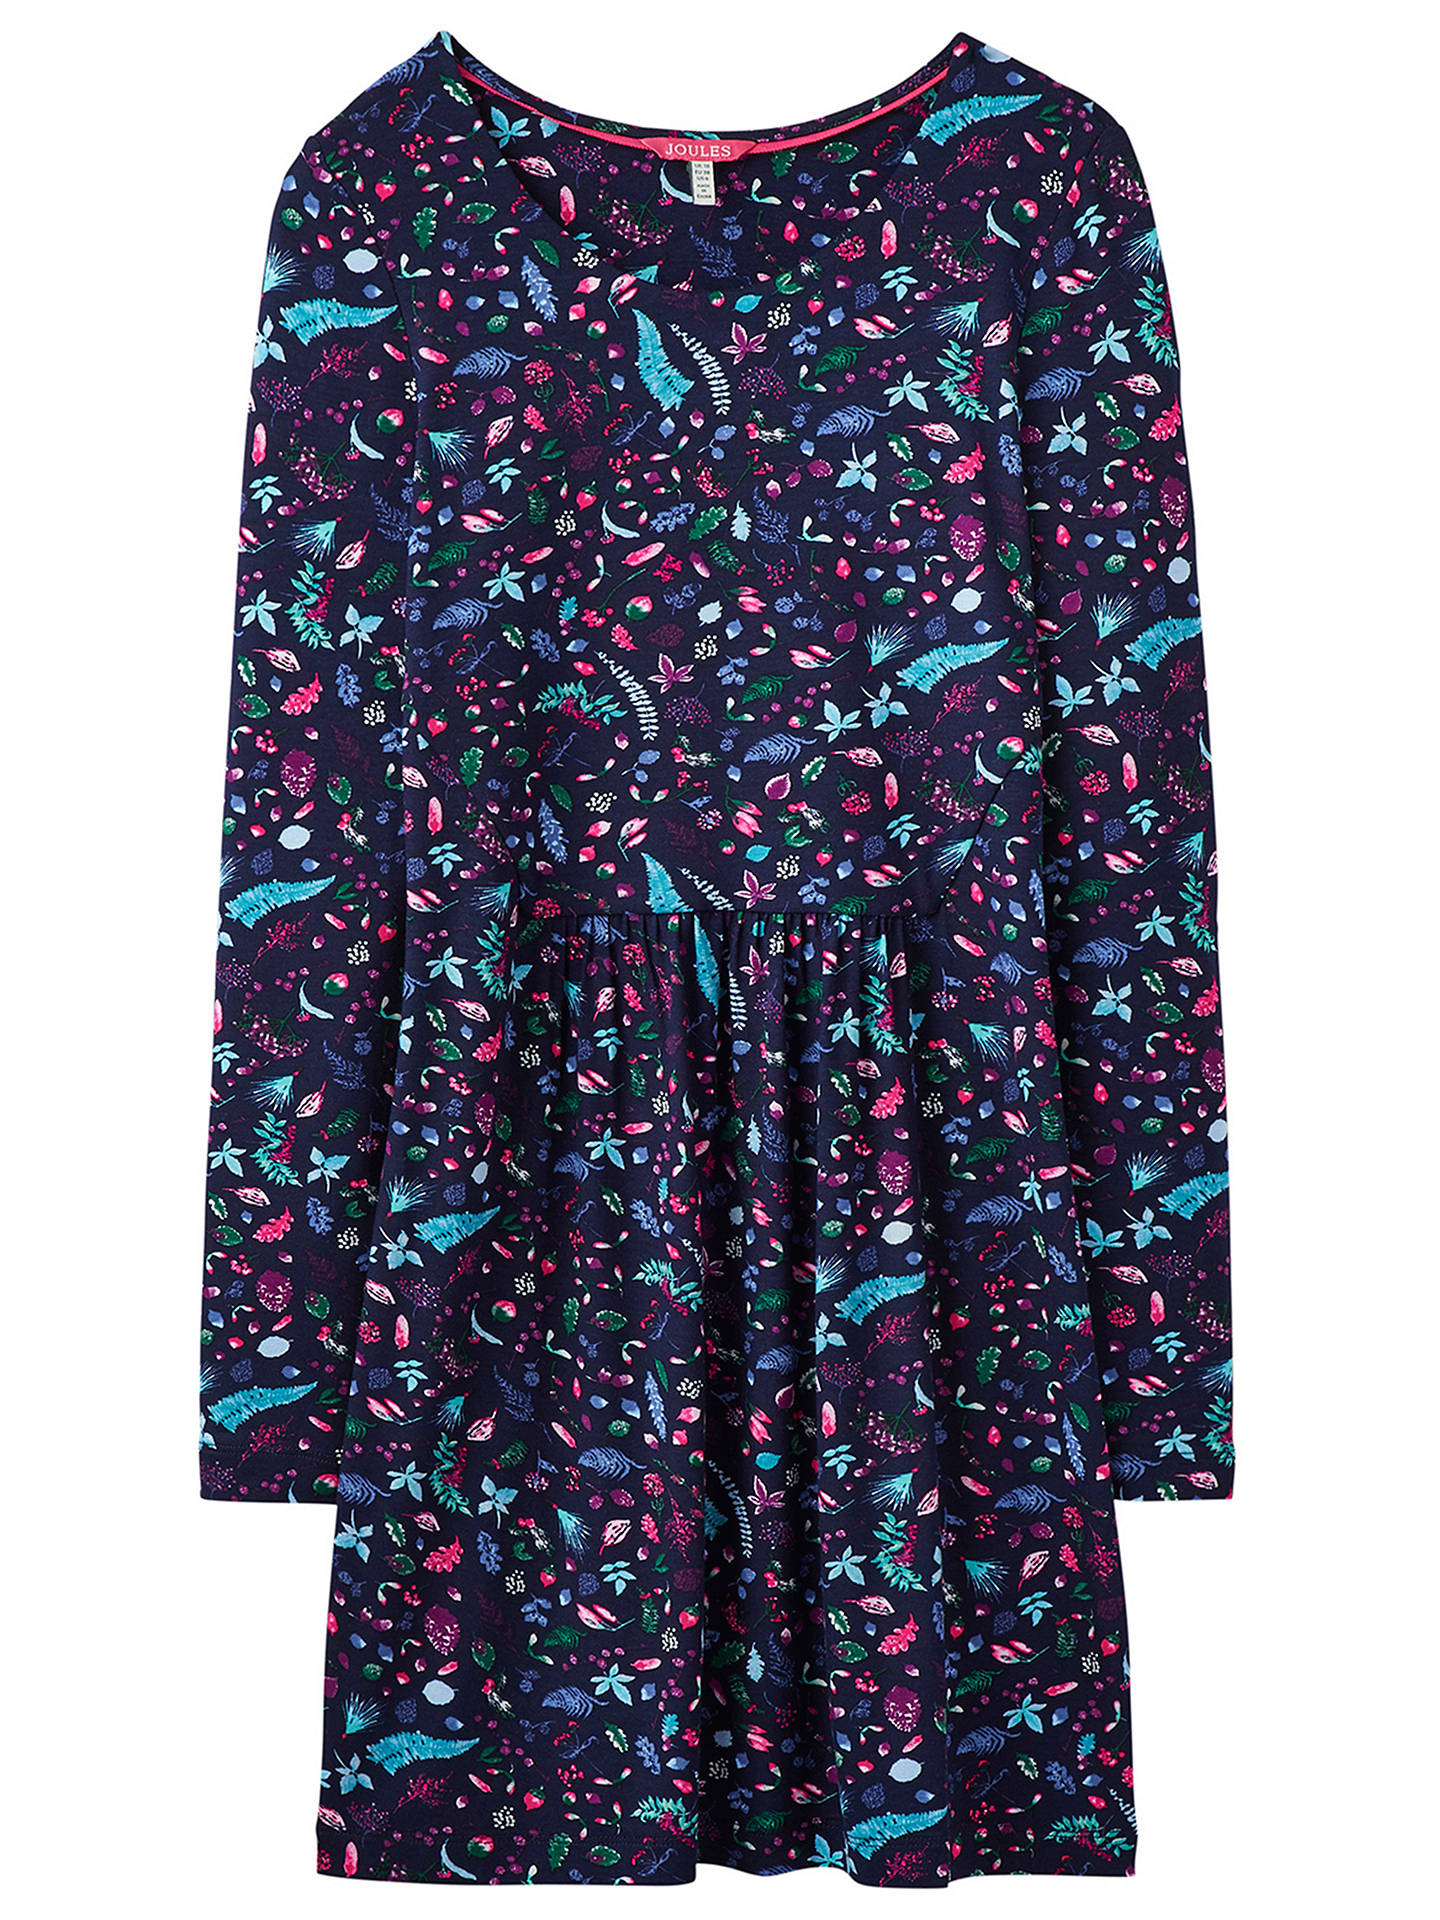 2a753f01943 ... Buy Joules Kirsten Jersey Tunic Dress, Navy, 6 Online at johnlewis.com  ...